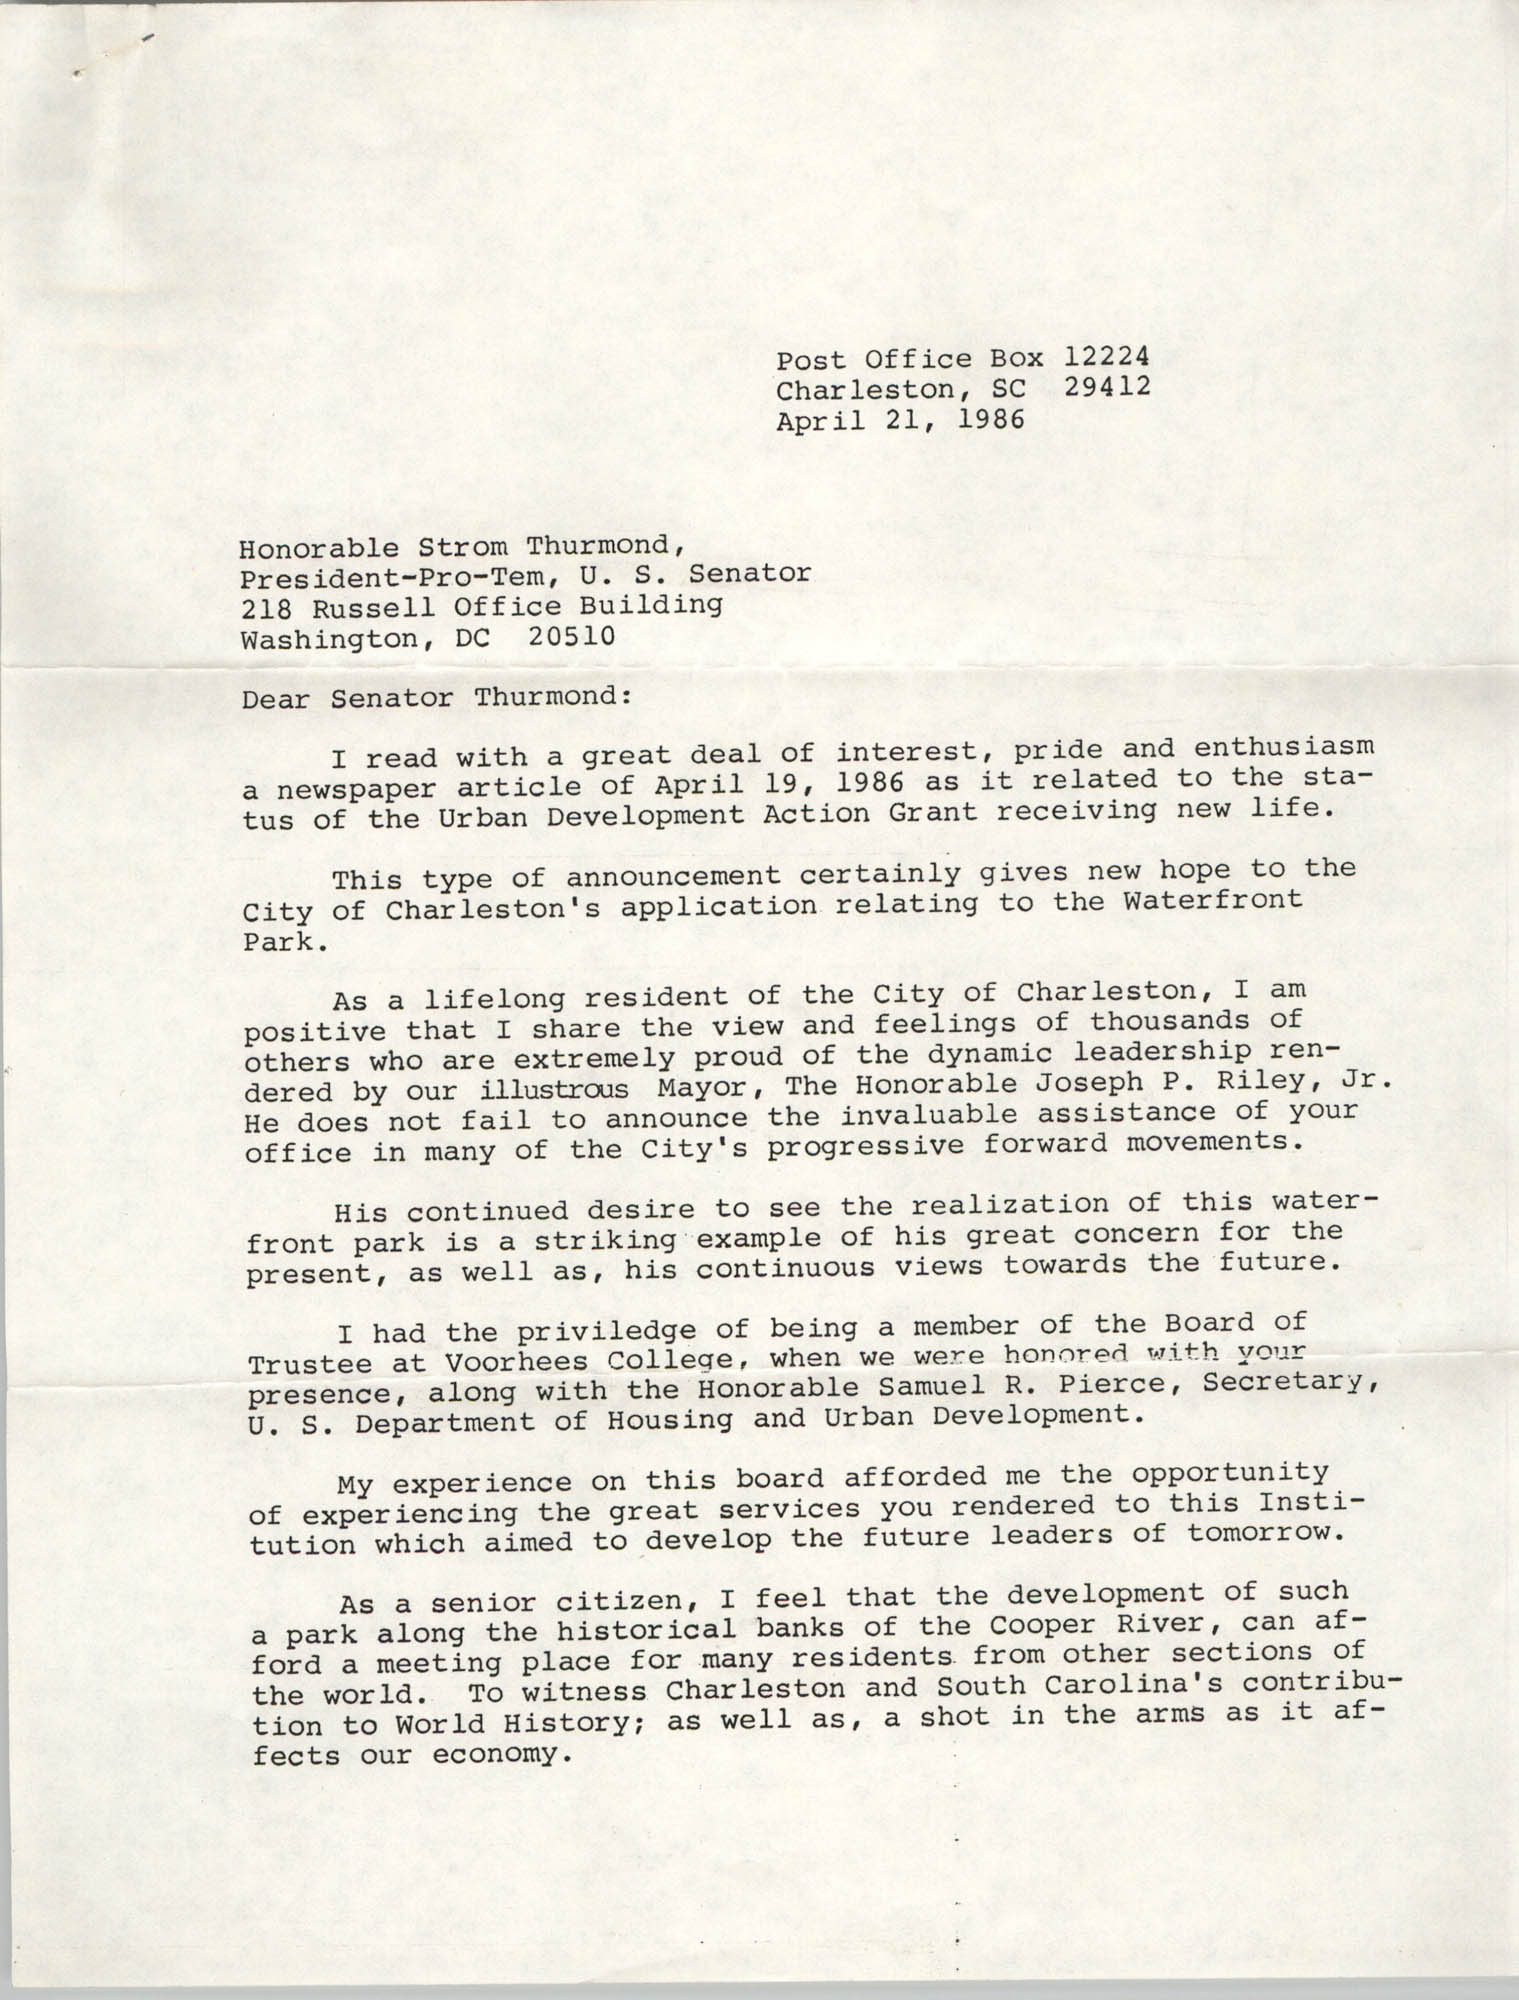 Letter from J. Arthur Brown to Strom Thurmond, April 21, 1986